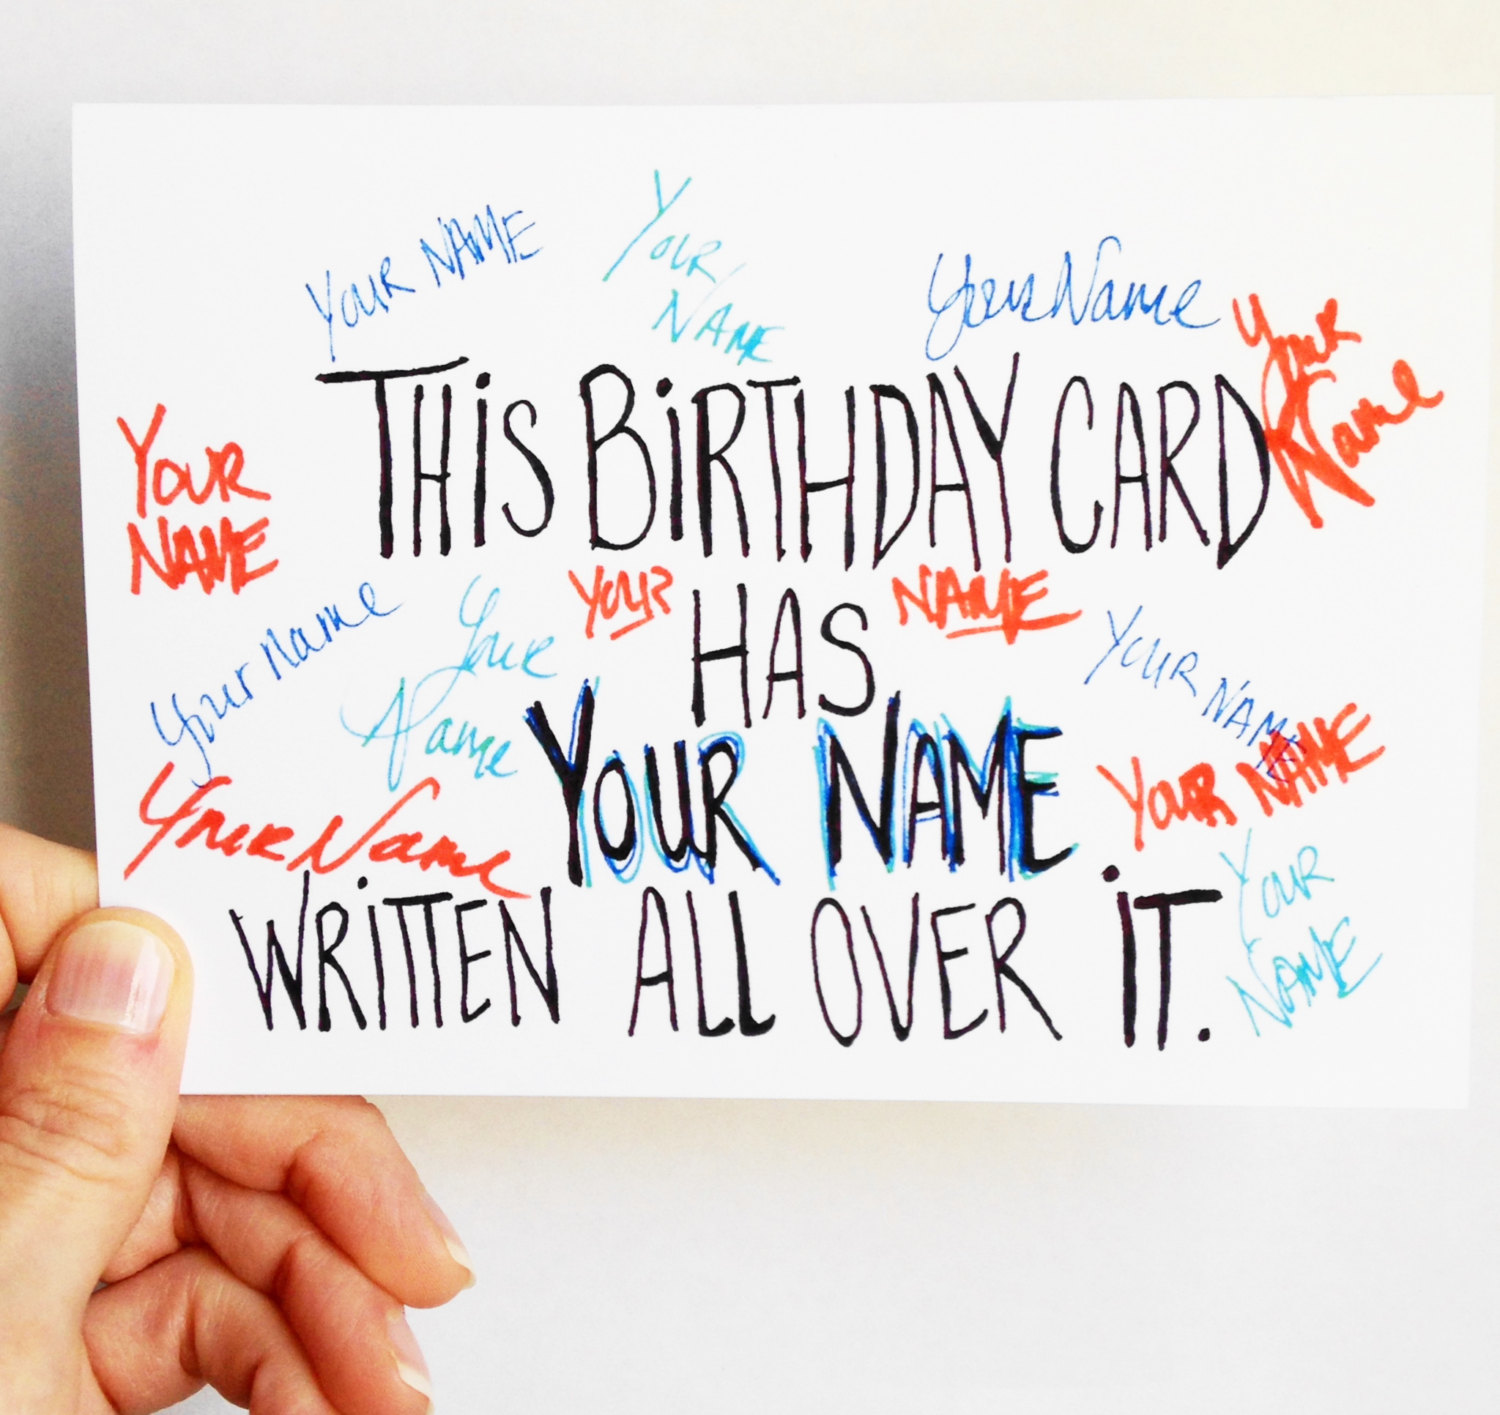 Clever Birthday Puns